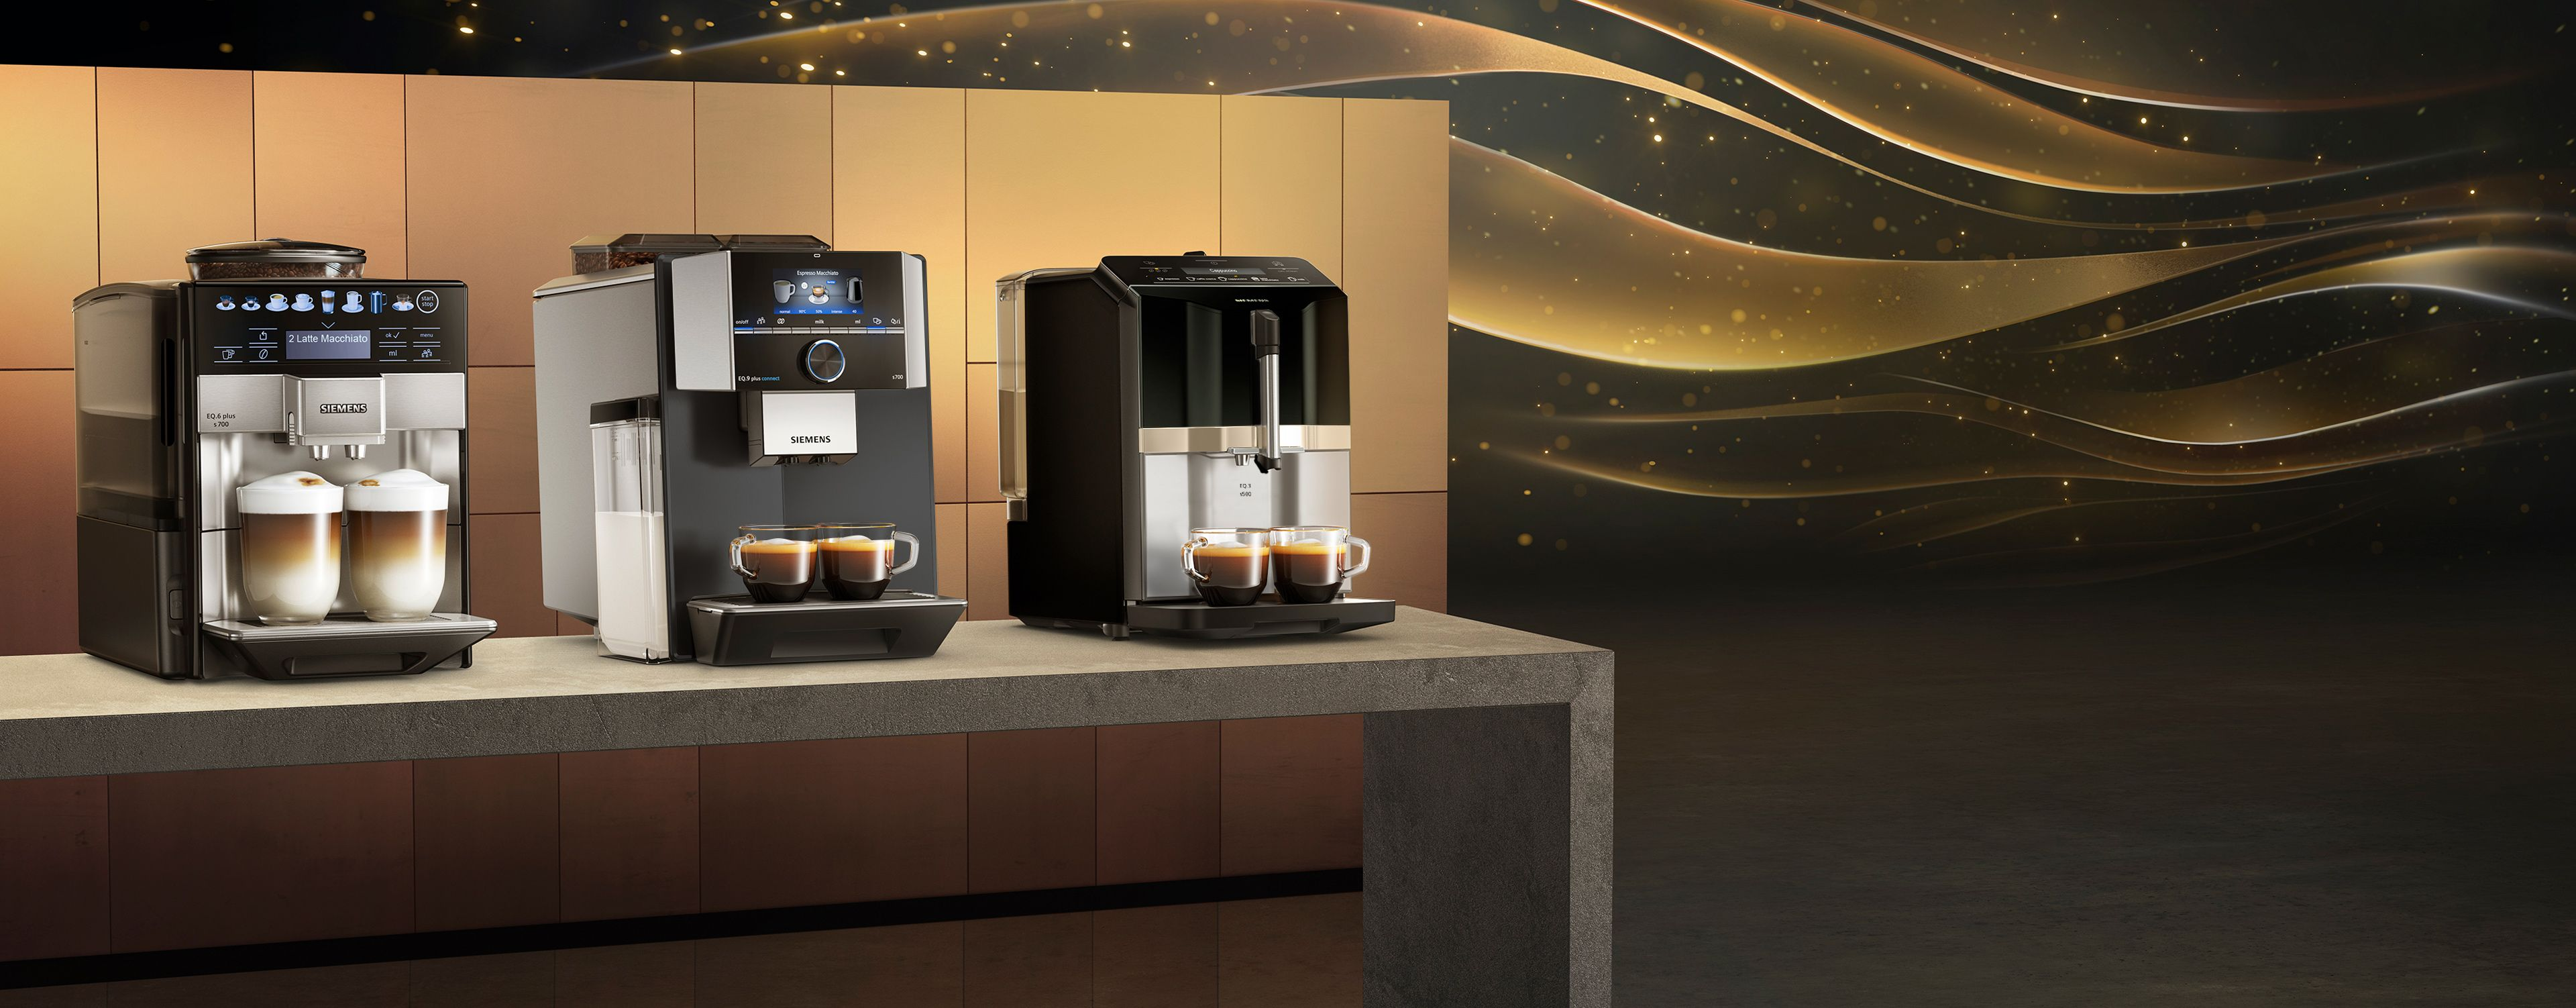 Eq The New Range Of Fully Automatic Coffee Machines By